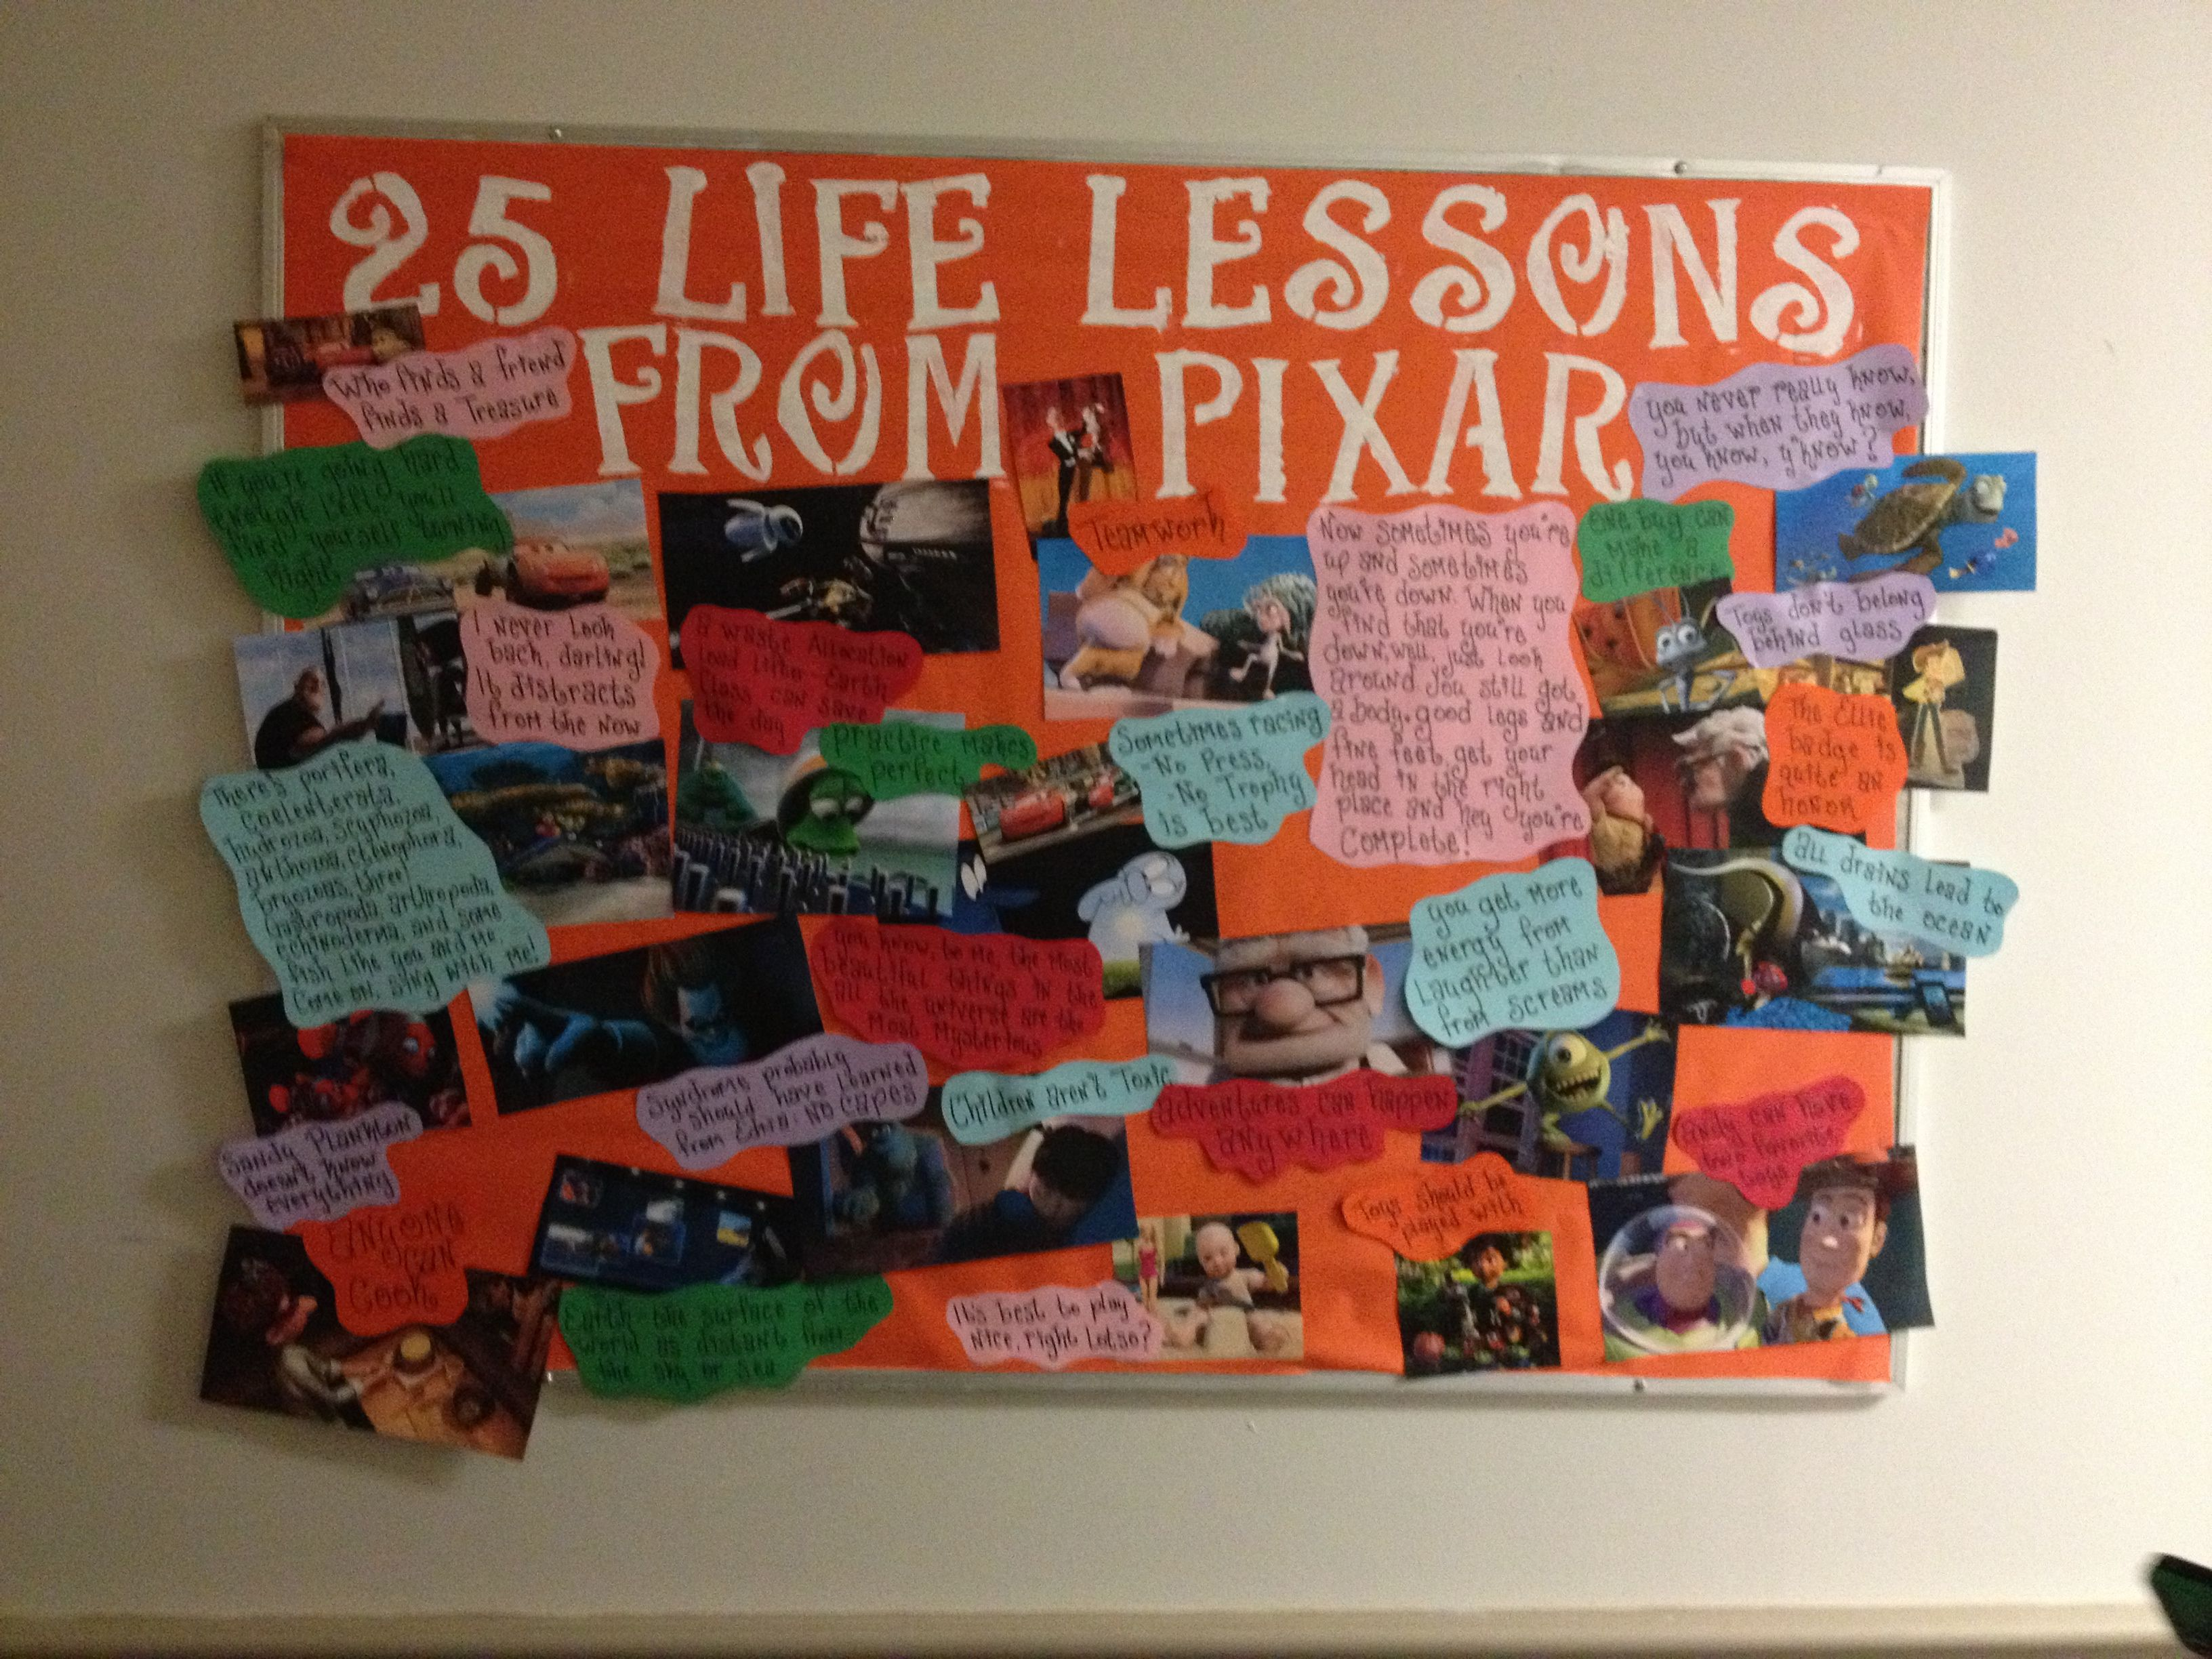 best images about student affairs programming resident assistant bulletin board on life lessons according to pixar bethany college west virginia